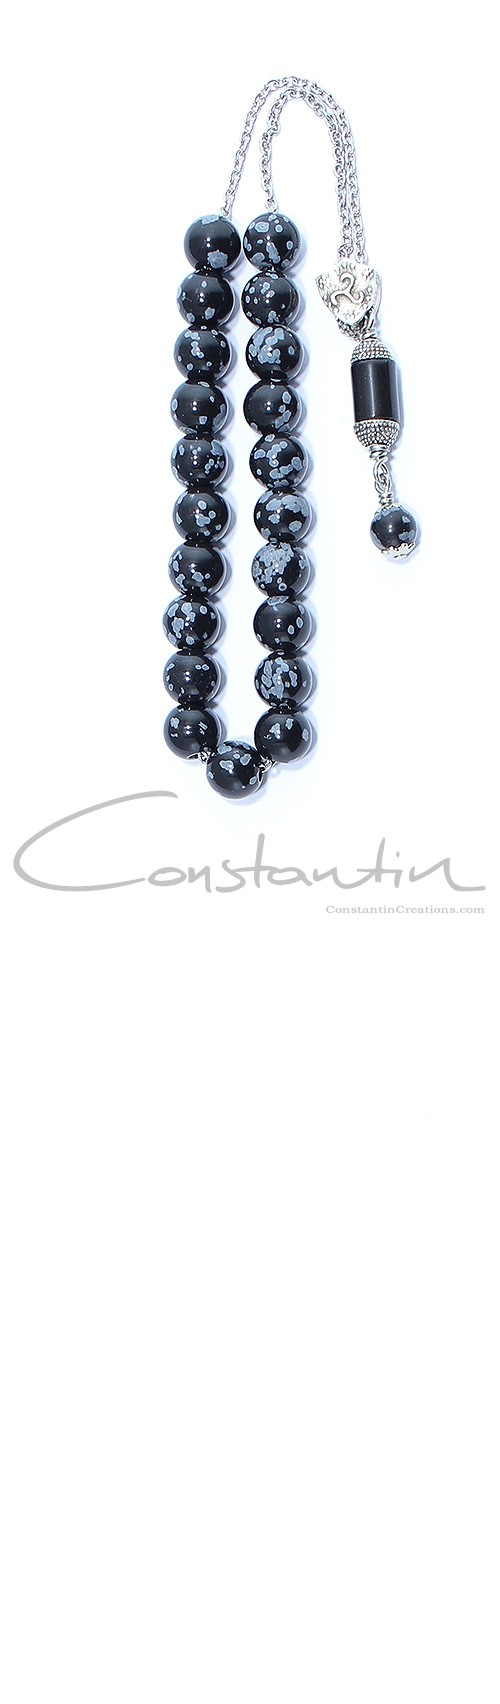 Hand crafted, Greek komboloi made of natural  Snowflake Obsidian gemstone.